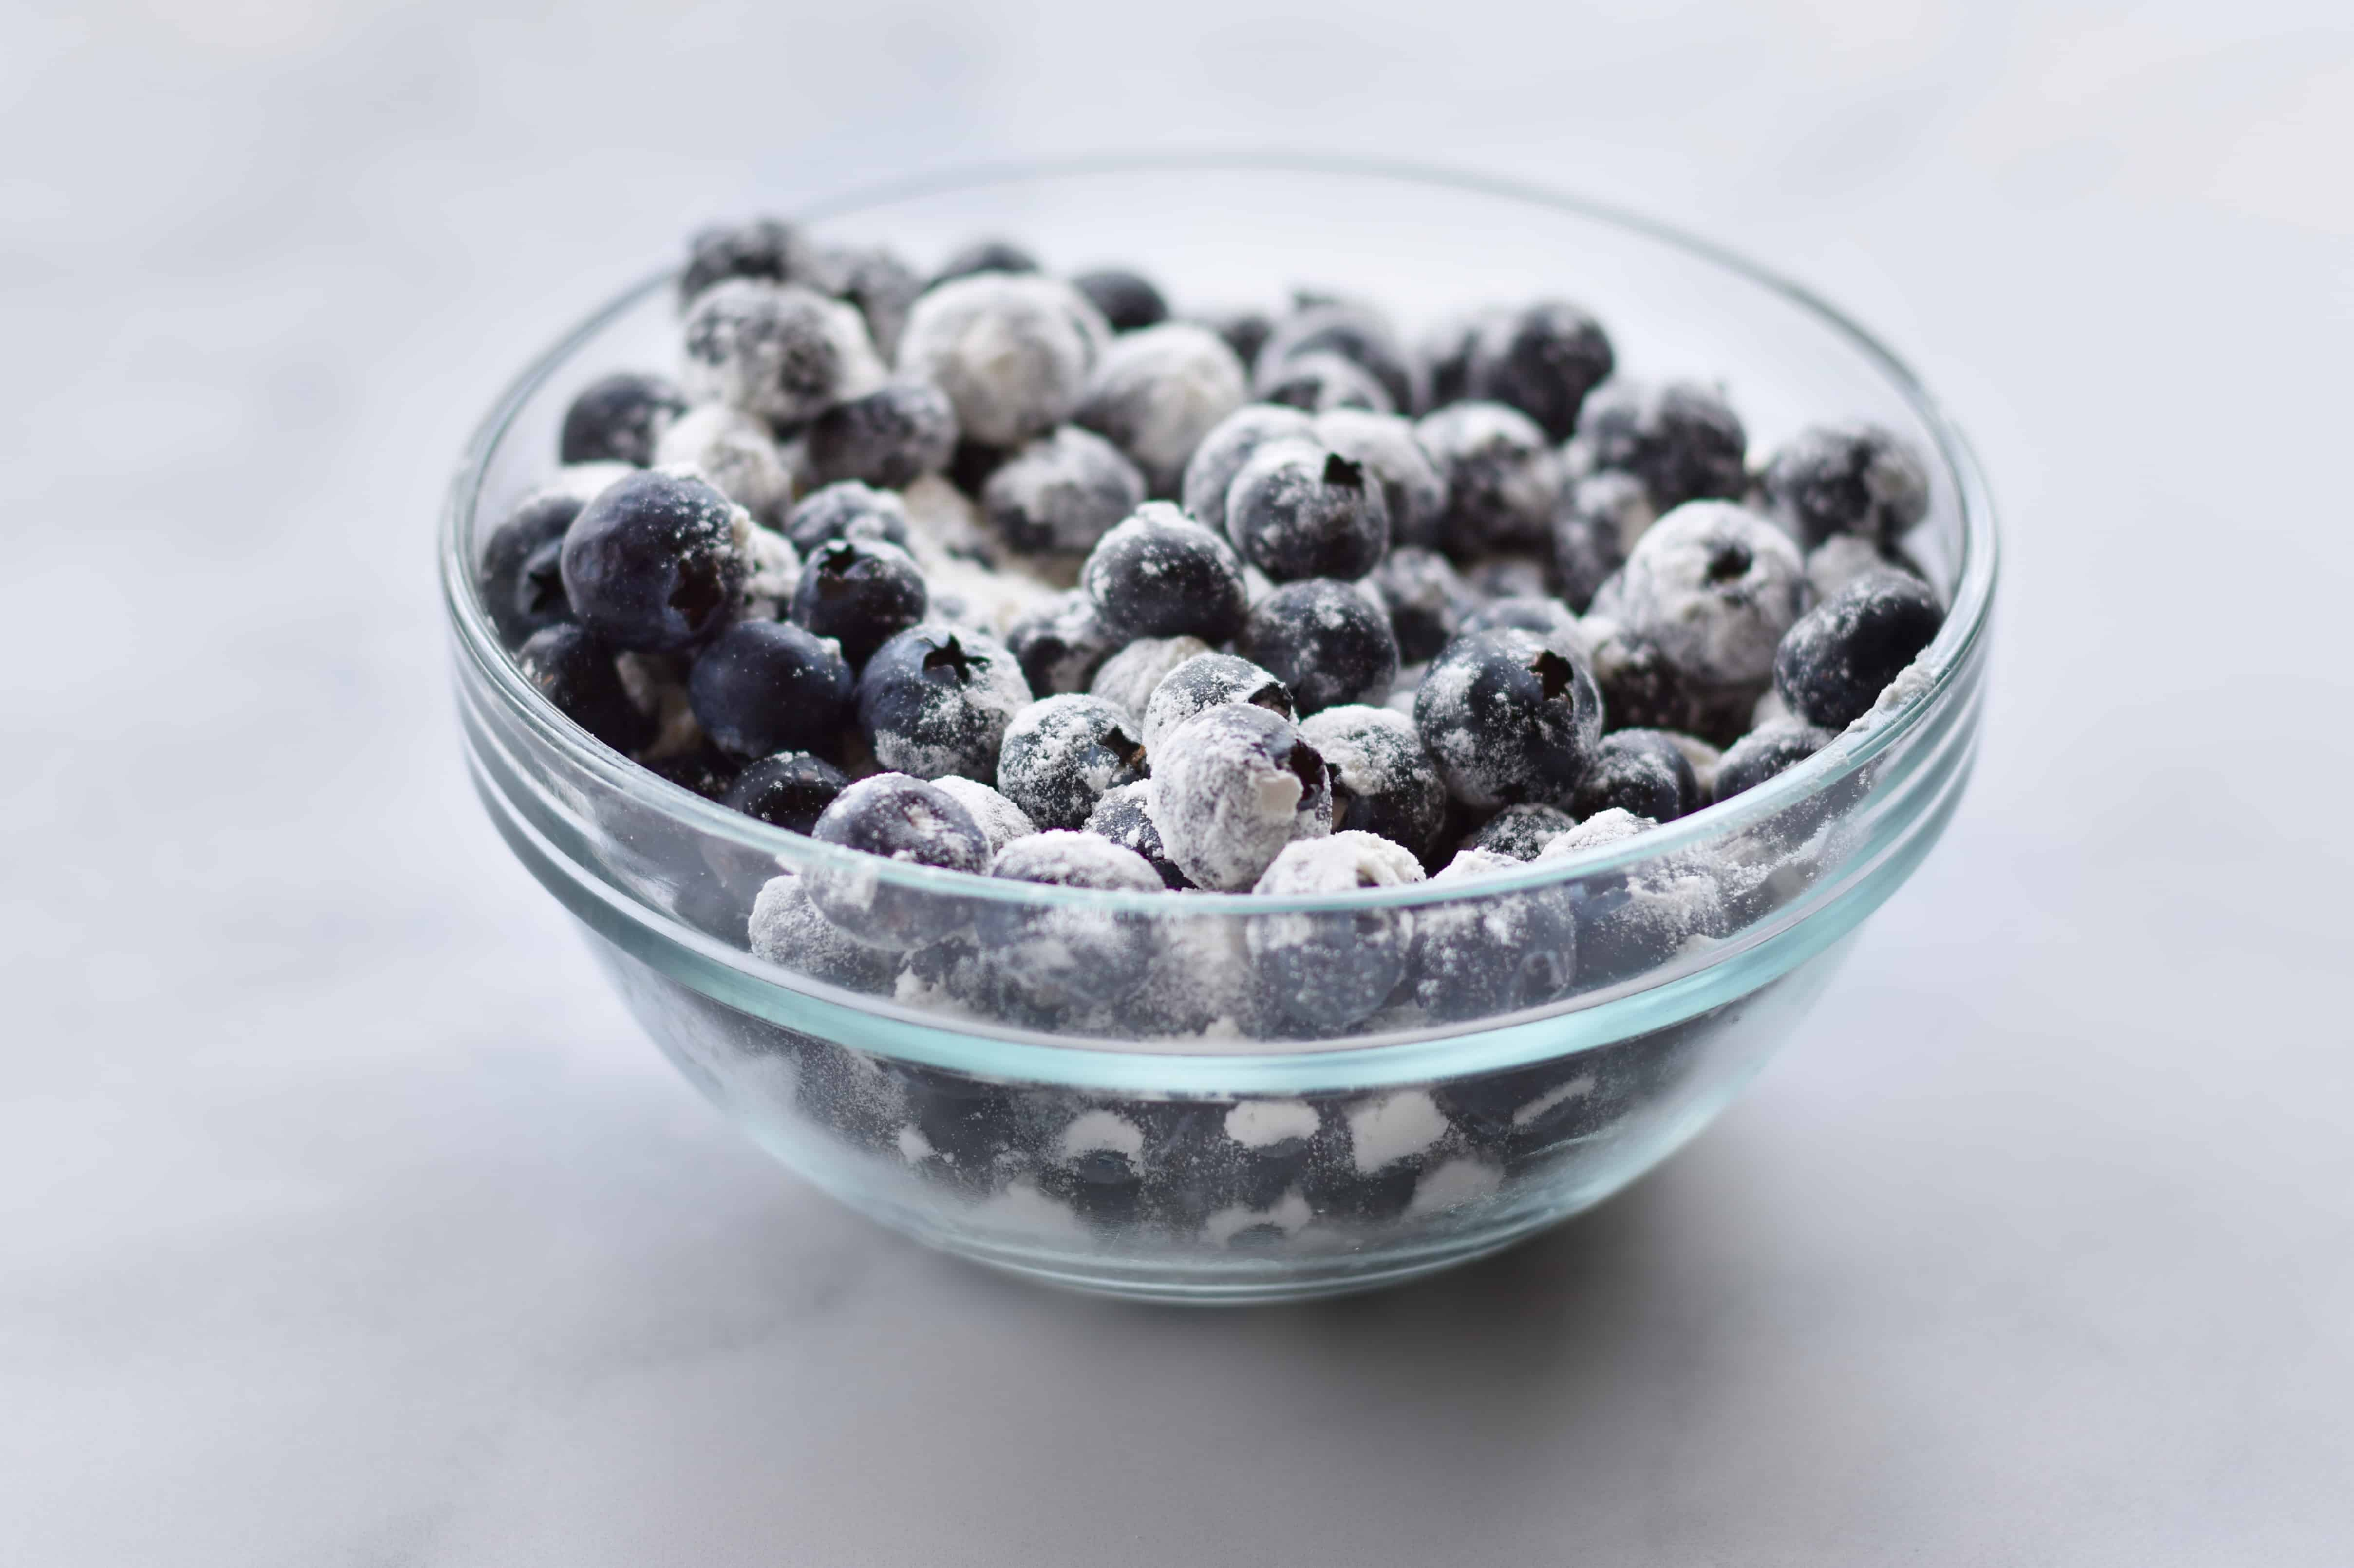 closeup of blueberries in a bowl